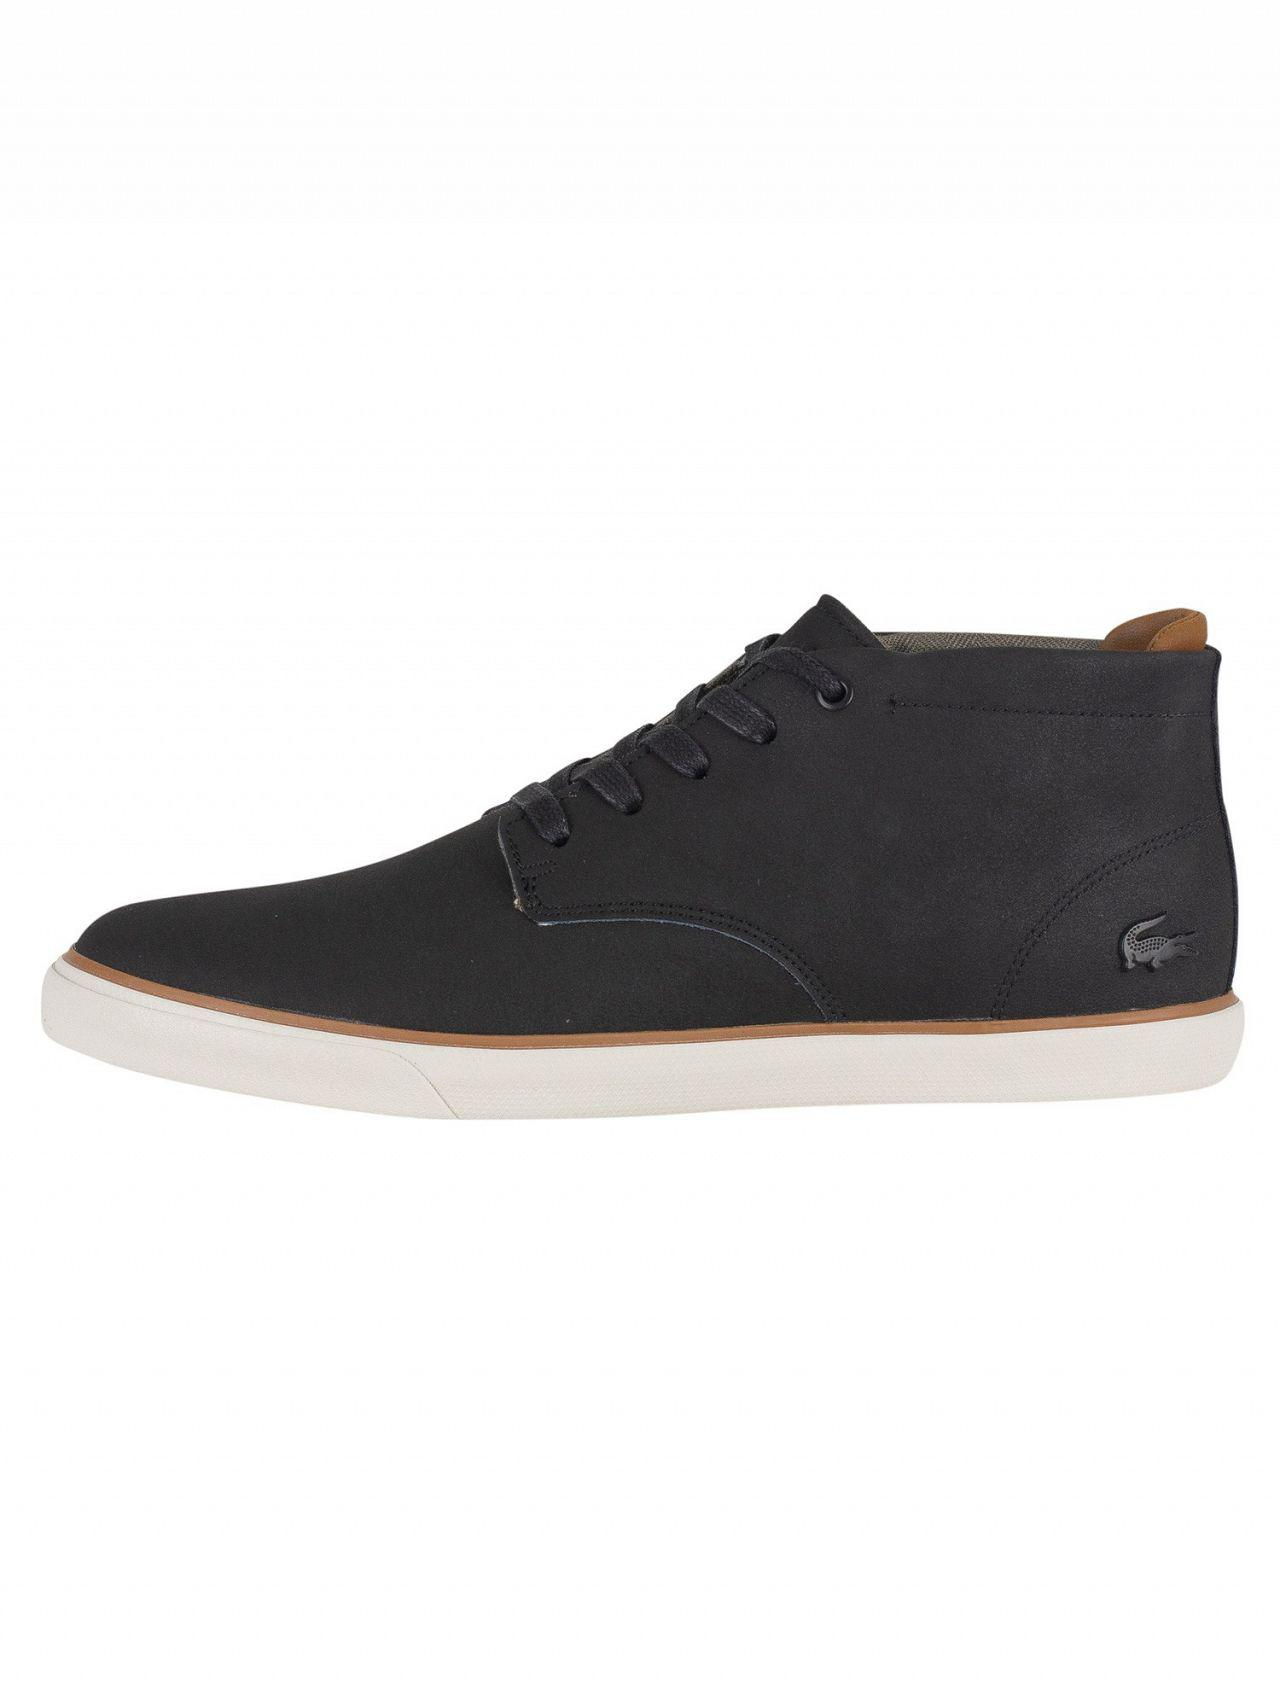 217ce33b8 Lyst - Lacoste Black brown Esparre Chukka 318 1 Cam Leather Trainers ...